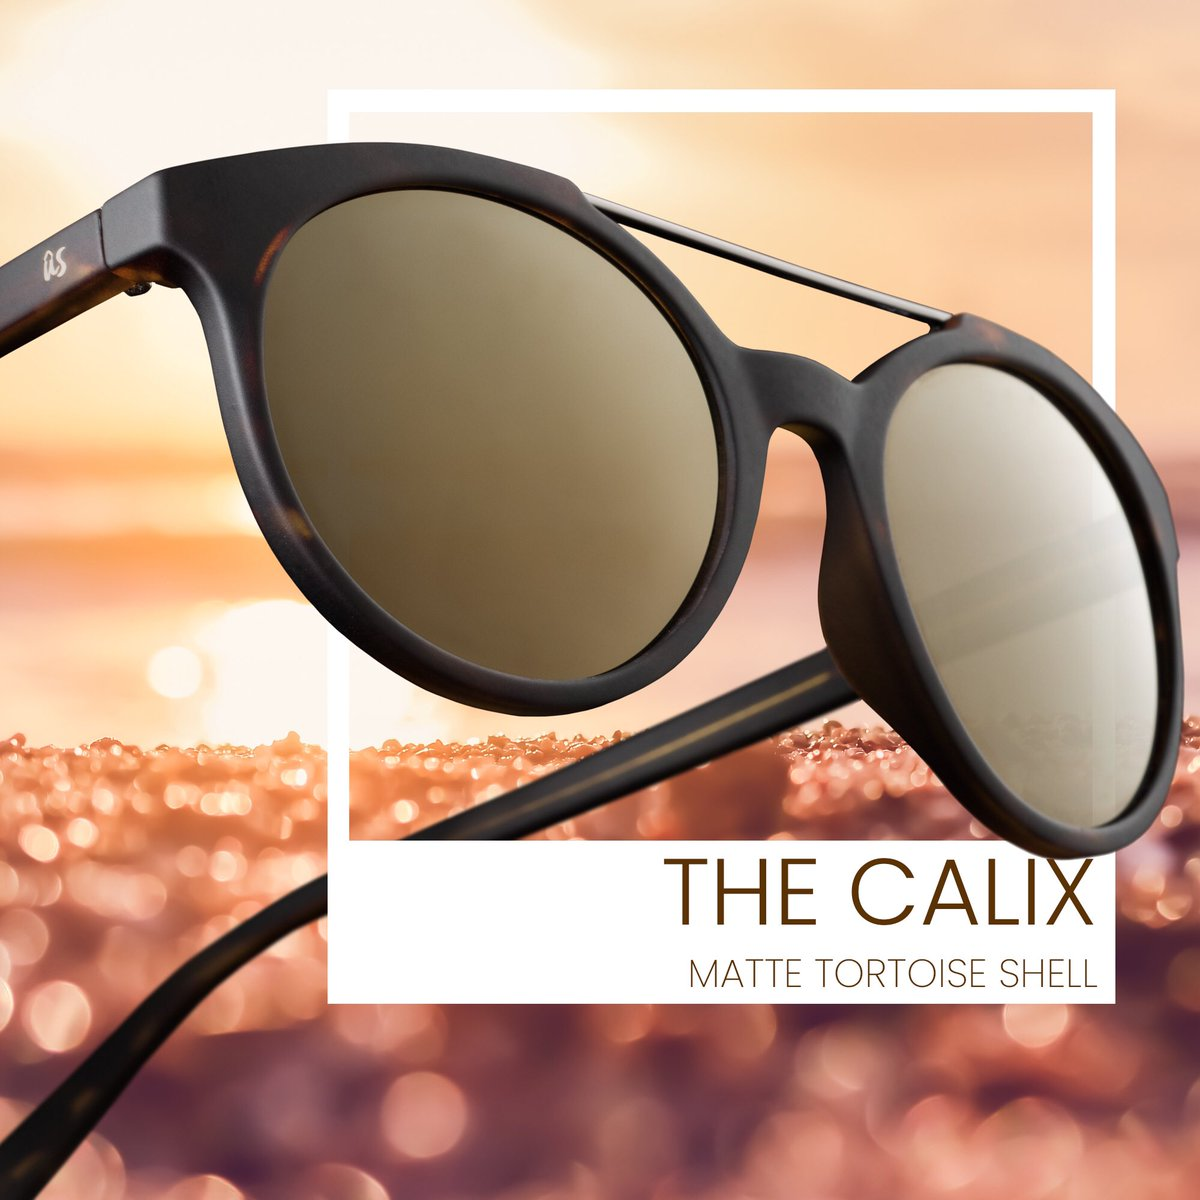 Always a crowd-pleaser, The Calix features classic vintage curves and a light weight metal brow bar, resulting in pure, smoking hot retro sexiness... https://t.co/Jjh8ESa35J #jointhemovement #sunglasses #sustainablefashion https://t.co/zuO41JAD60